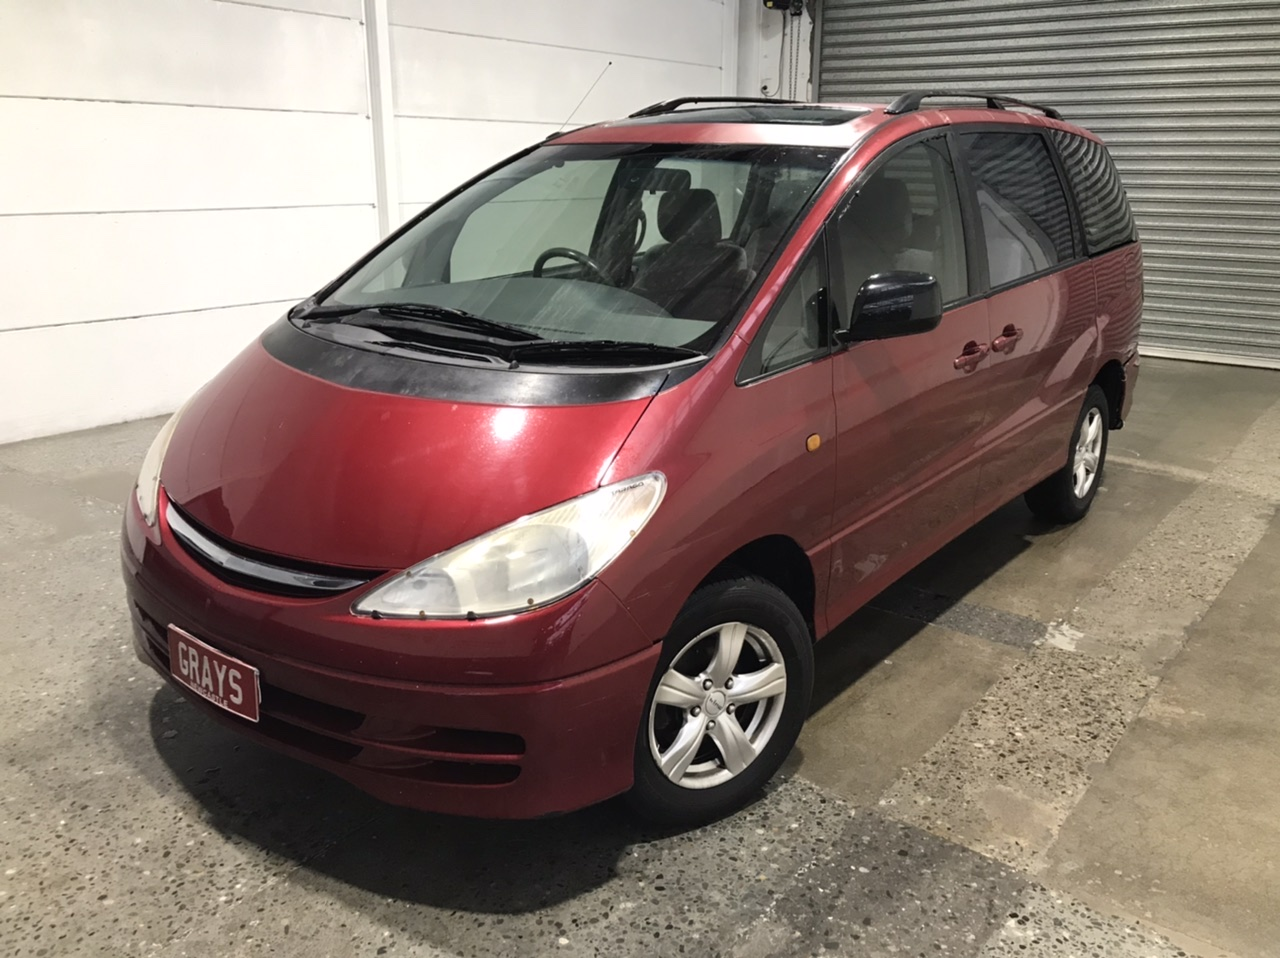 2000 Toyota Tarago GLX ACR30R Automatic 8 Seats People Mover (WOVR)